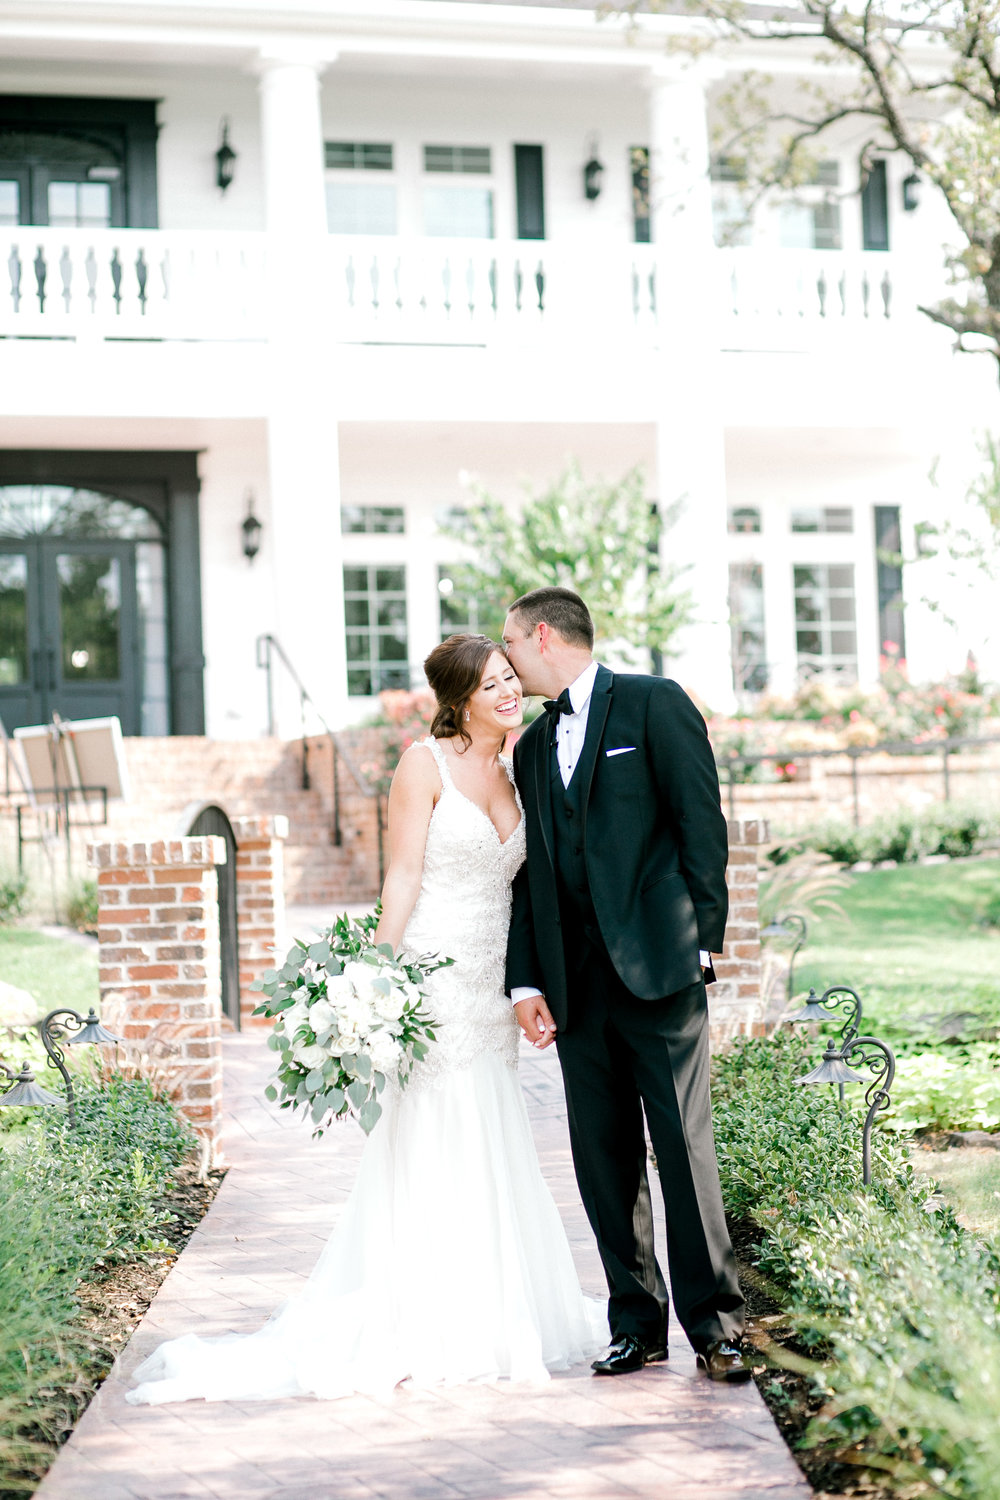 Adam & Baleigh Wedding Day - The Springs Parker Manor Weatherford, Texas